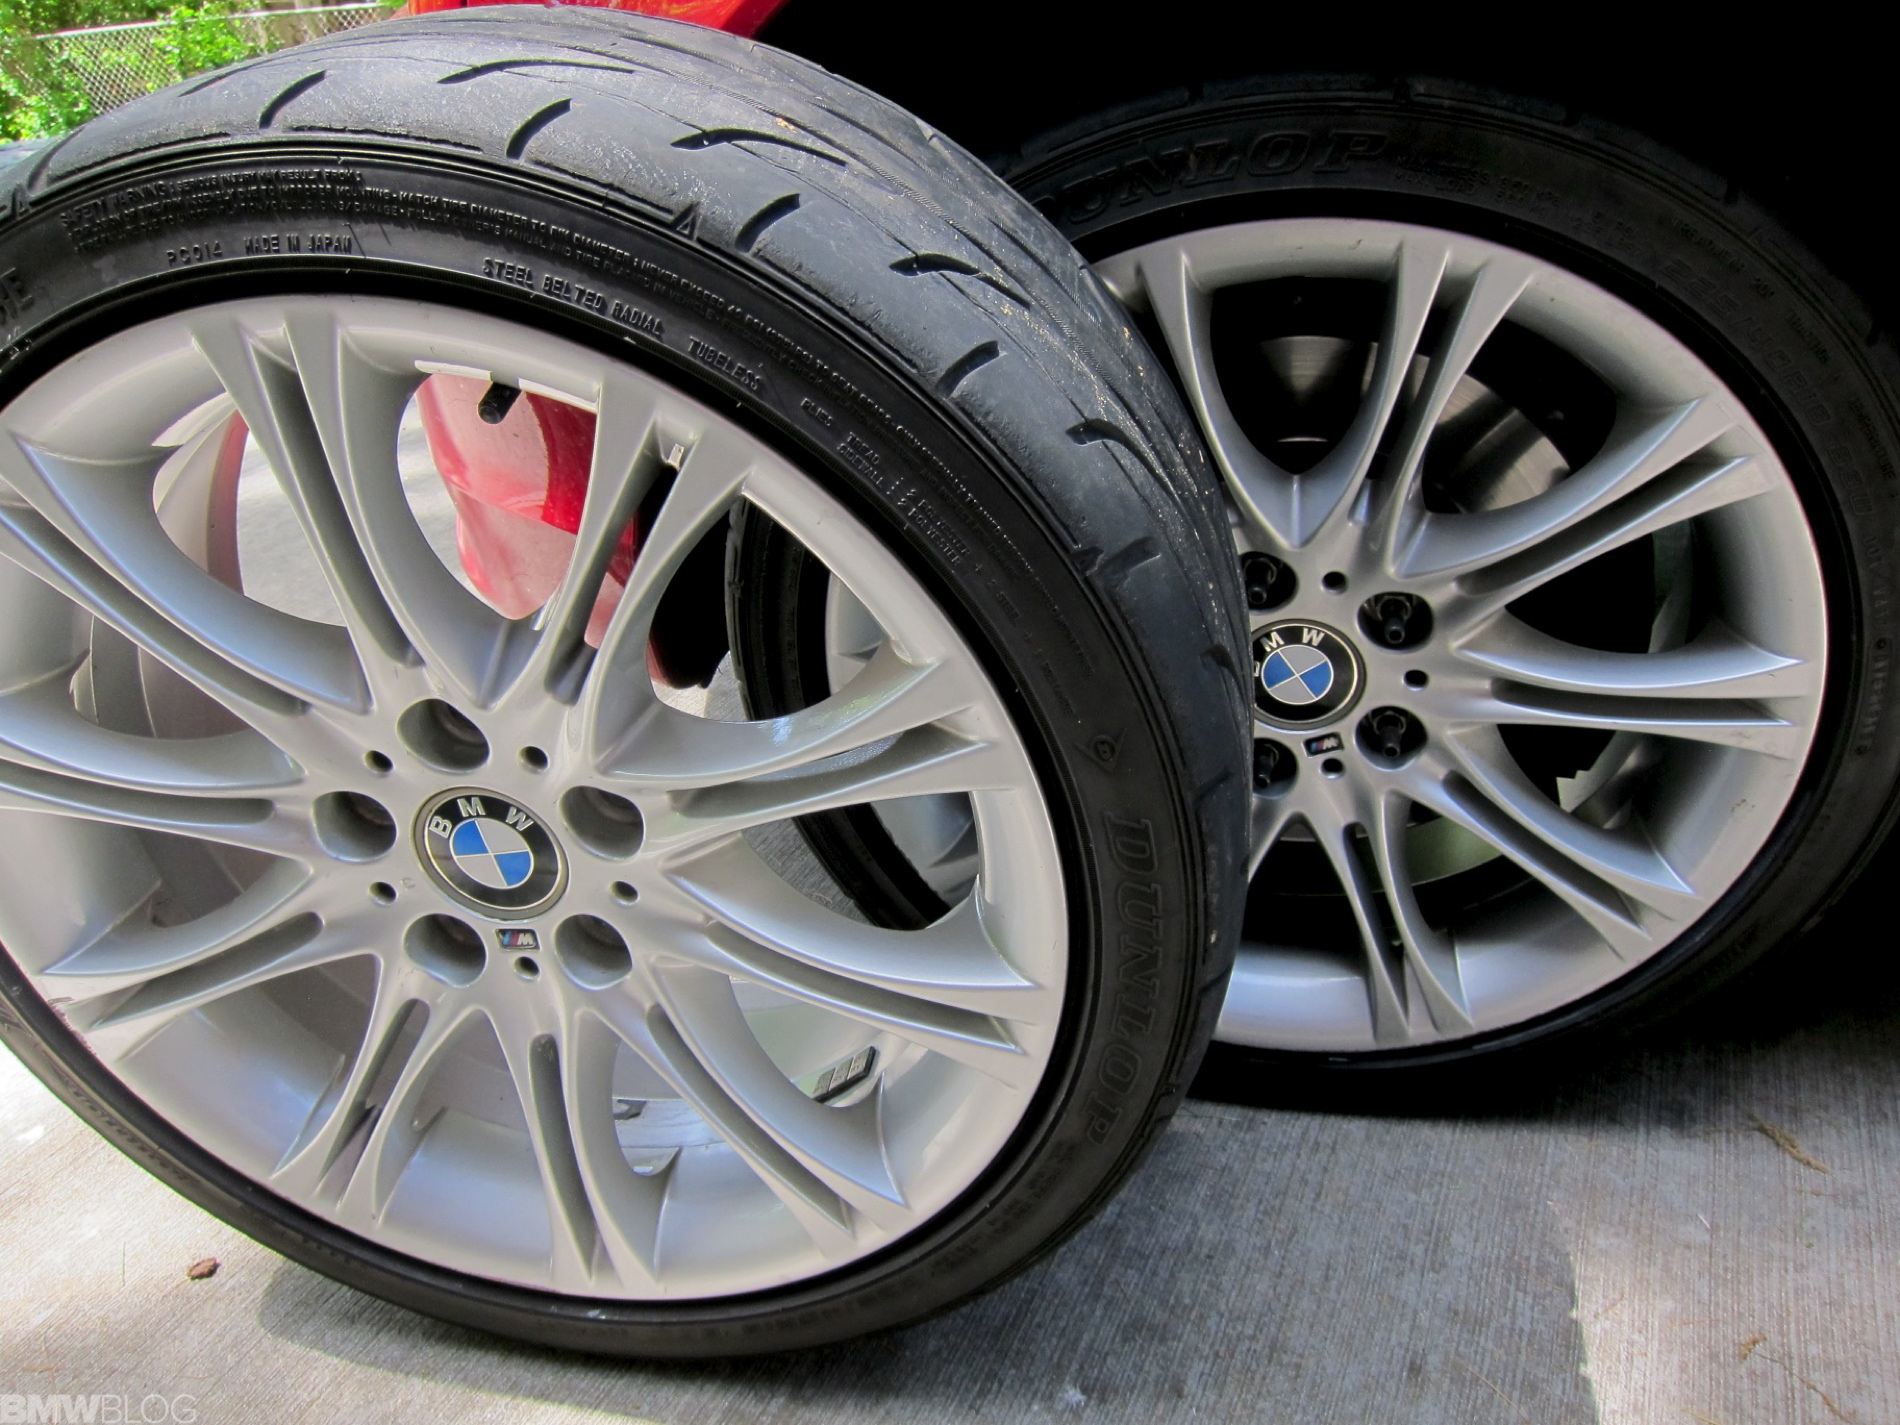 BMW wheel cleaner 27